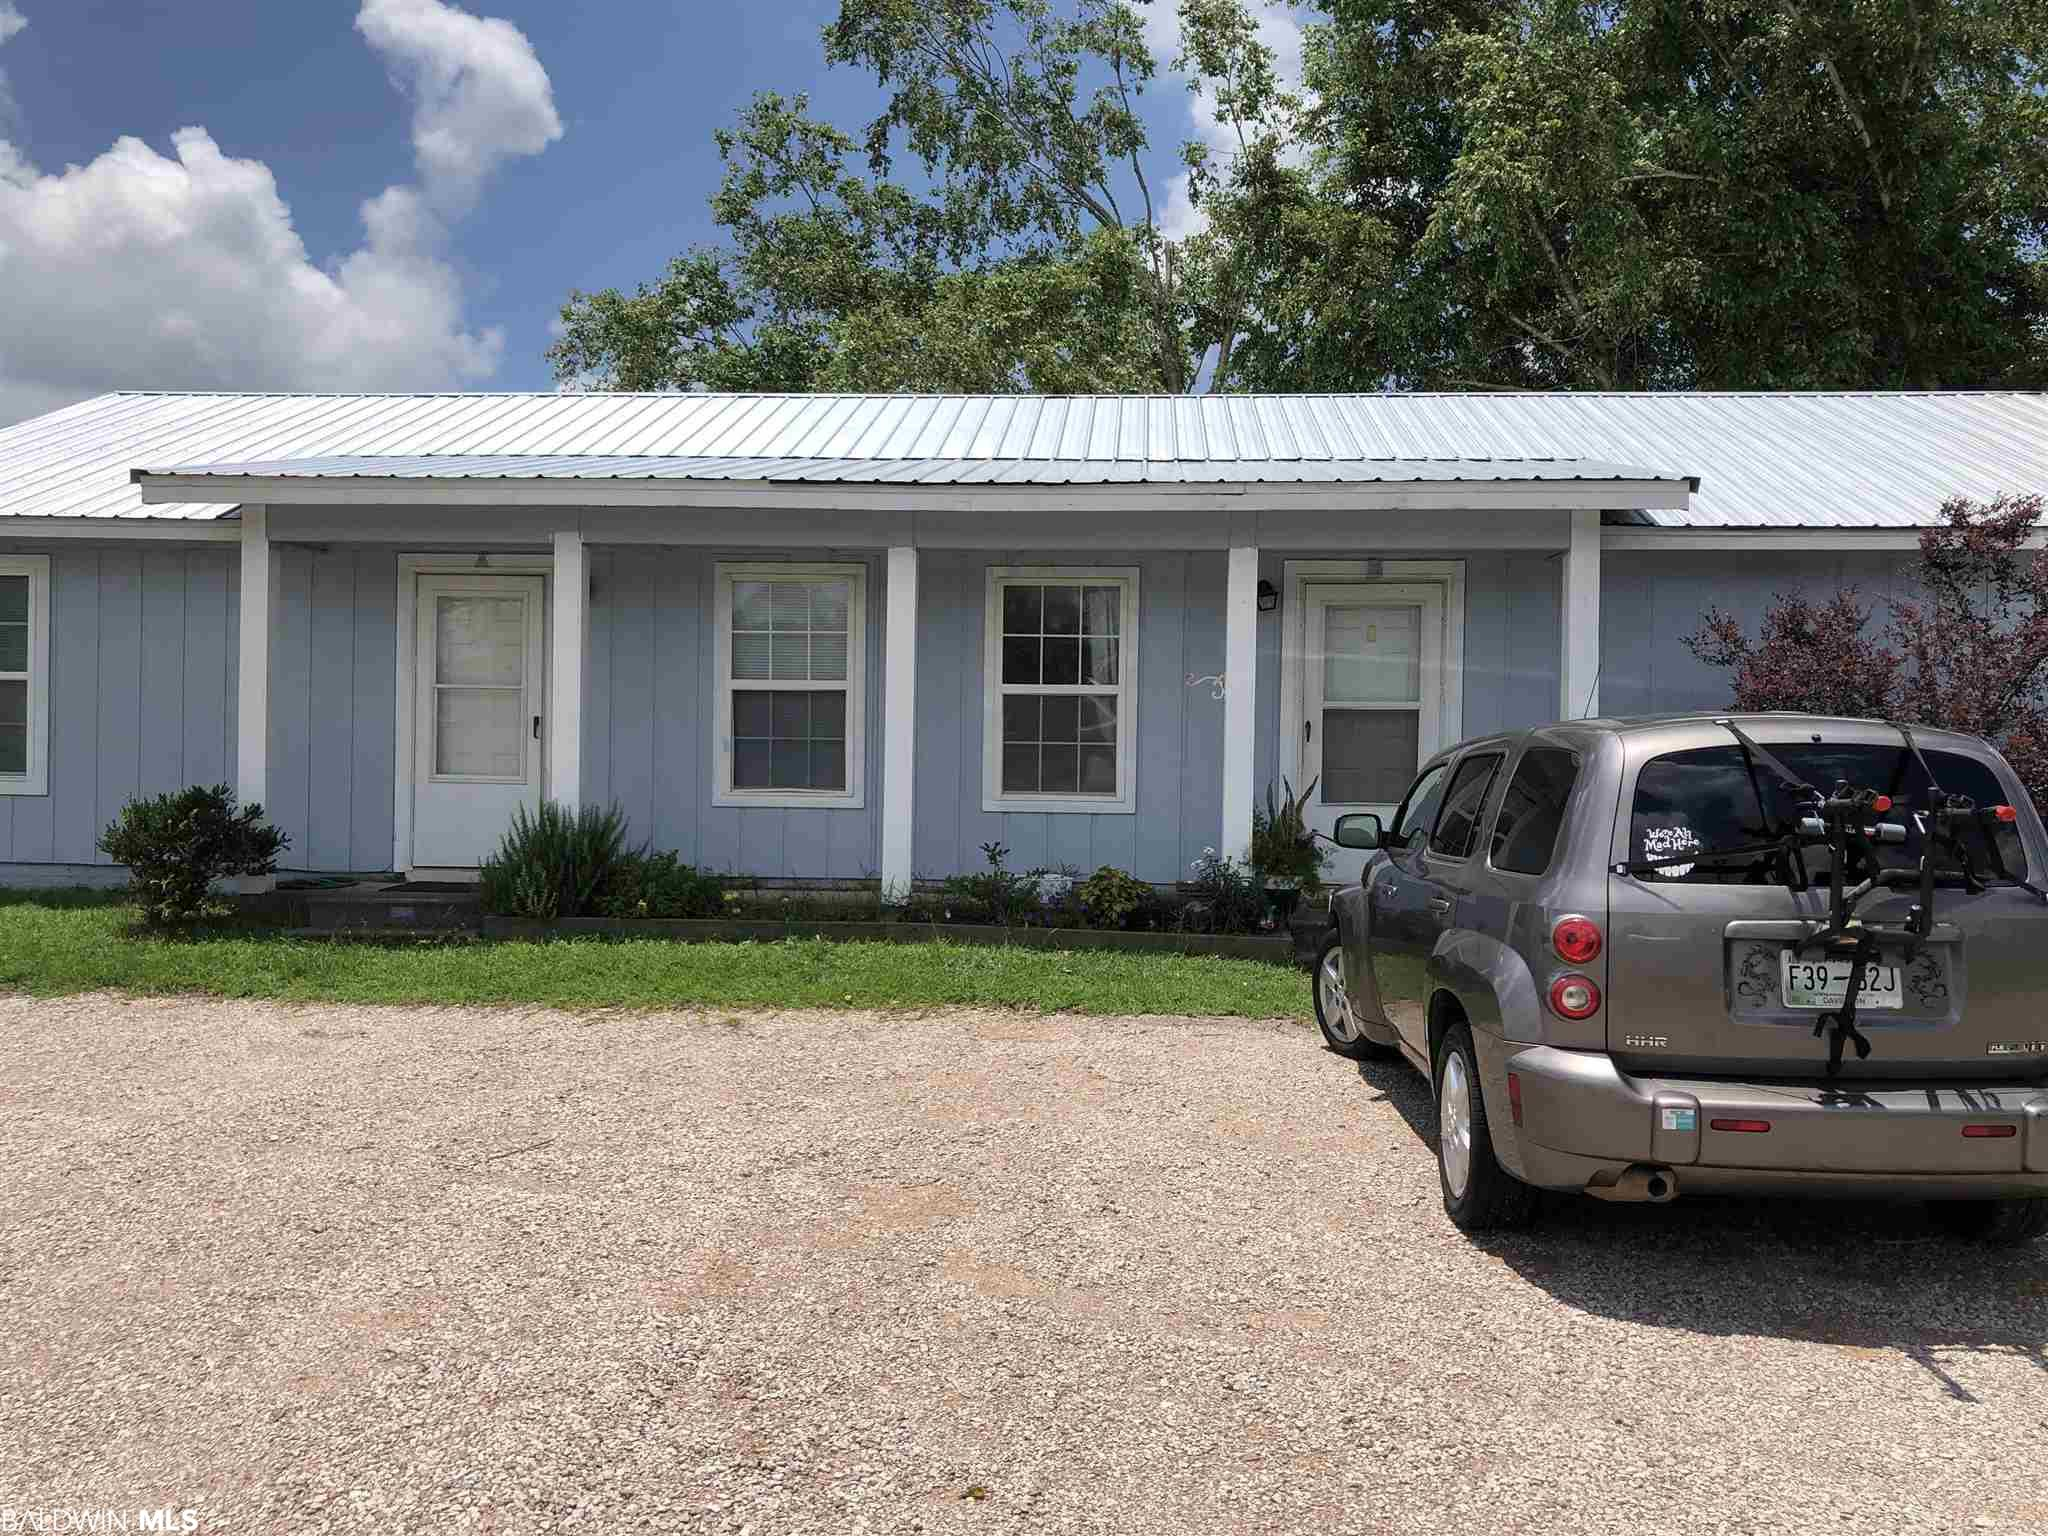 Attention Investors!! TWO Buildings, on Approx. 1 acre of land outside city limits (which means less taxes). Each building has a 2/1 and 1/1. No carpet! All tile and vinyl/laminate. All one level. Roof is metal and less than 2 years old. All tenants are month to month. Live in one unit and rent the other 3 out, or rent all units out. All information provided is deemed reliable but not guaranteed. Buyer or buyer's agent to verify all information.